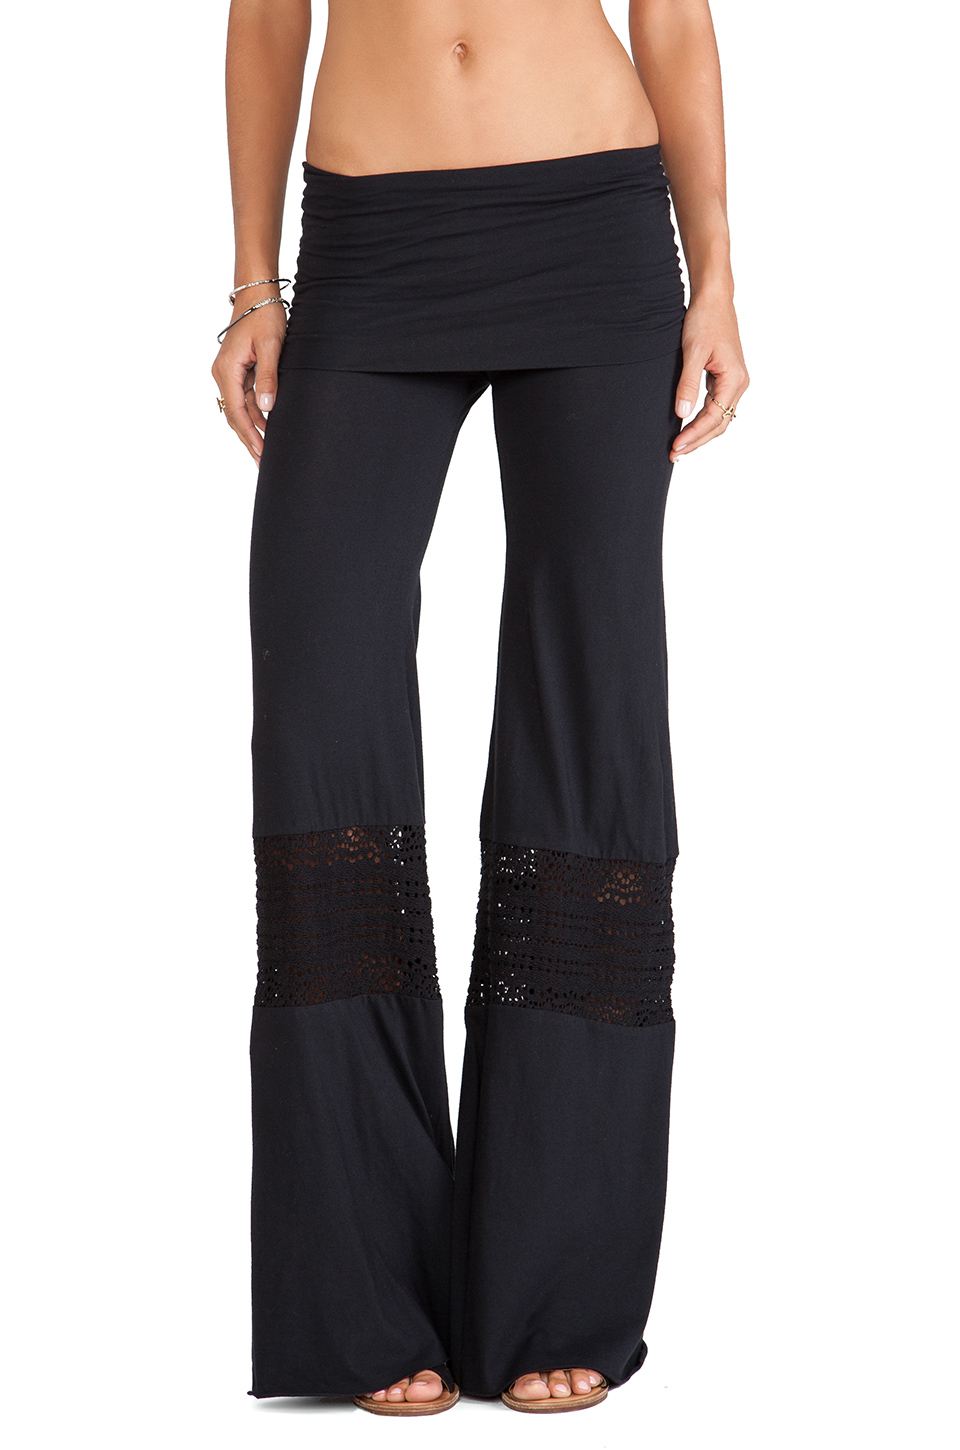 Crochet Pants : Nightcap Crochet Beach Pants in Black Lyst